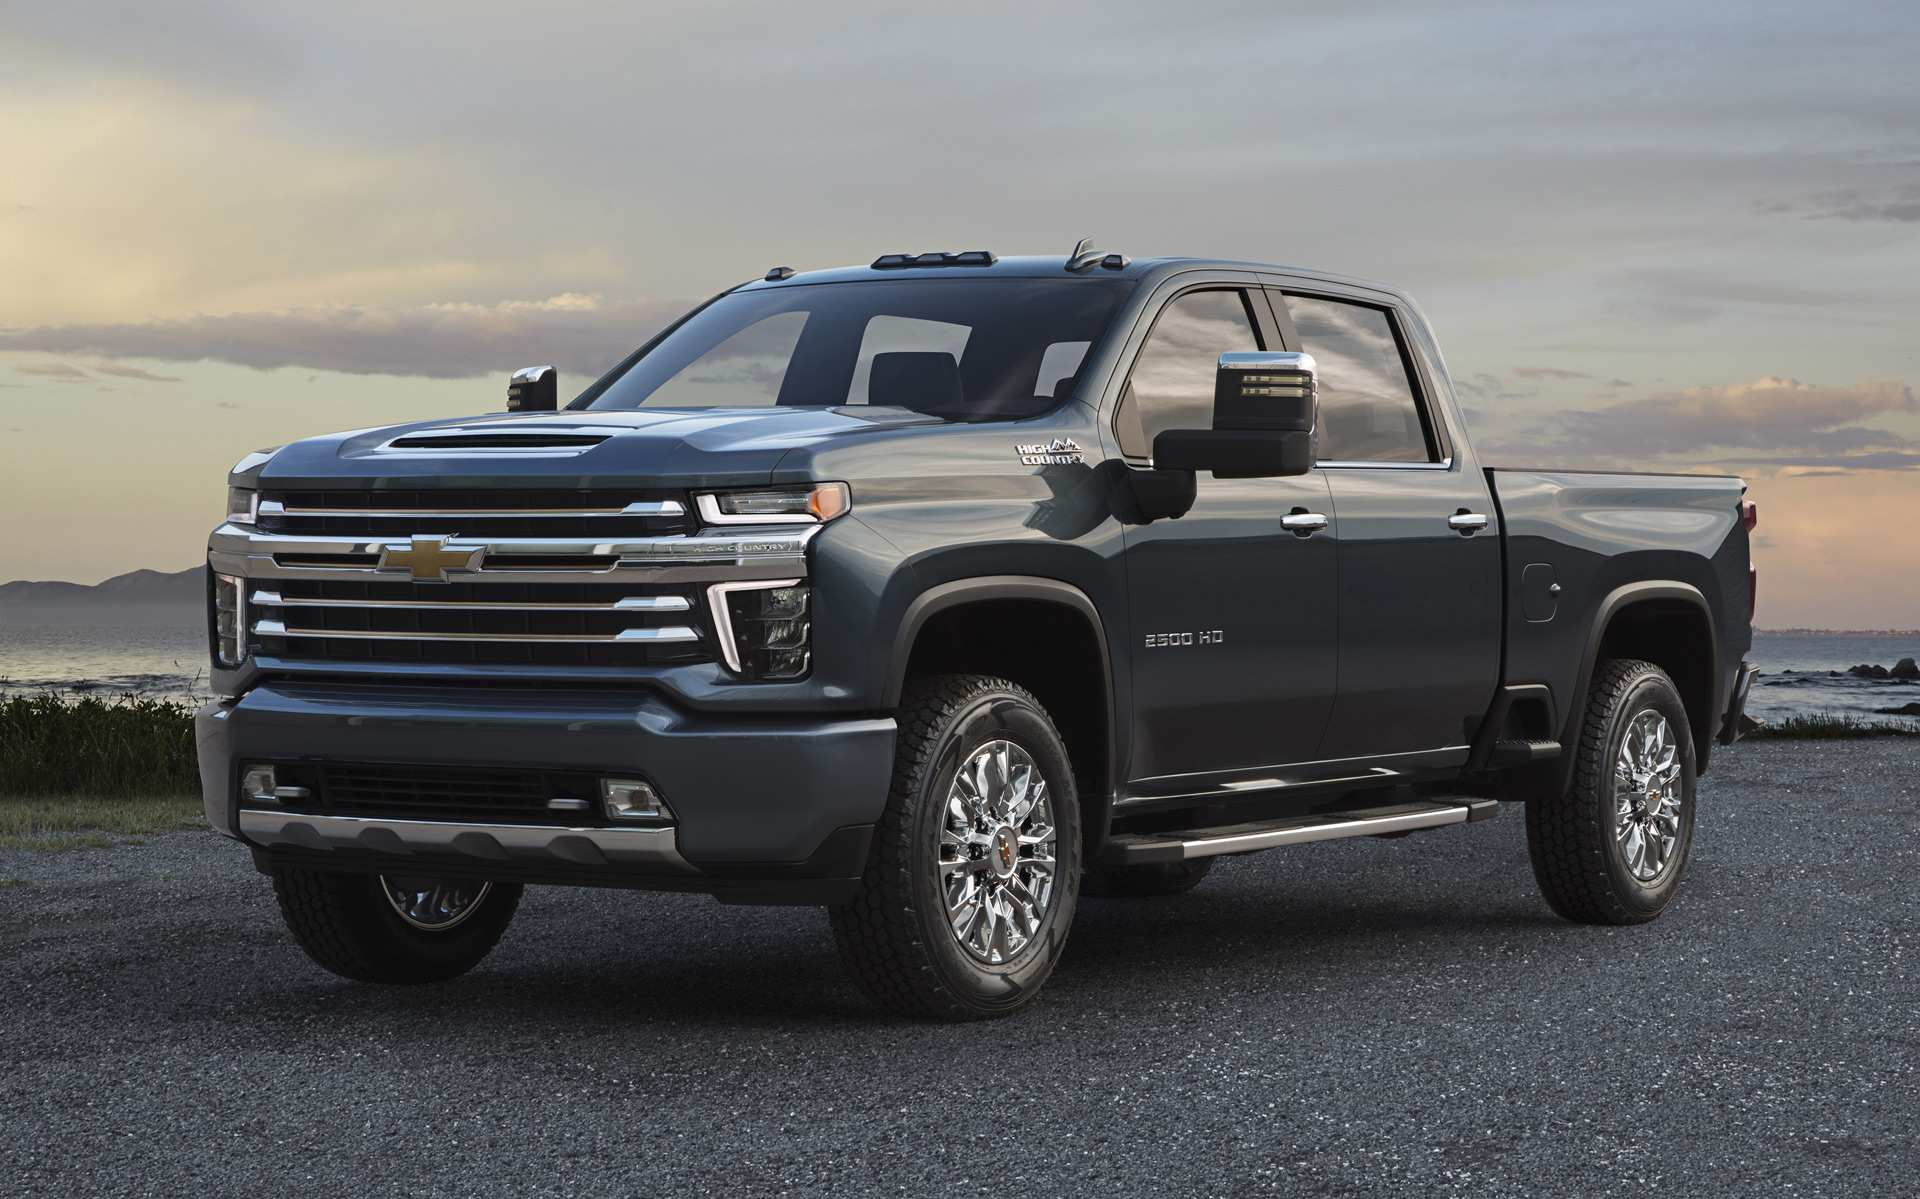 57 Best 2020 Chevy Silverado Hd Interior